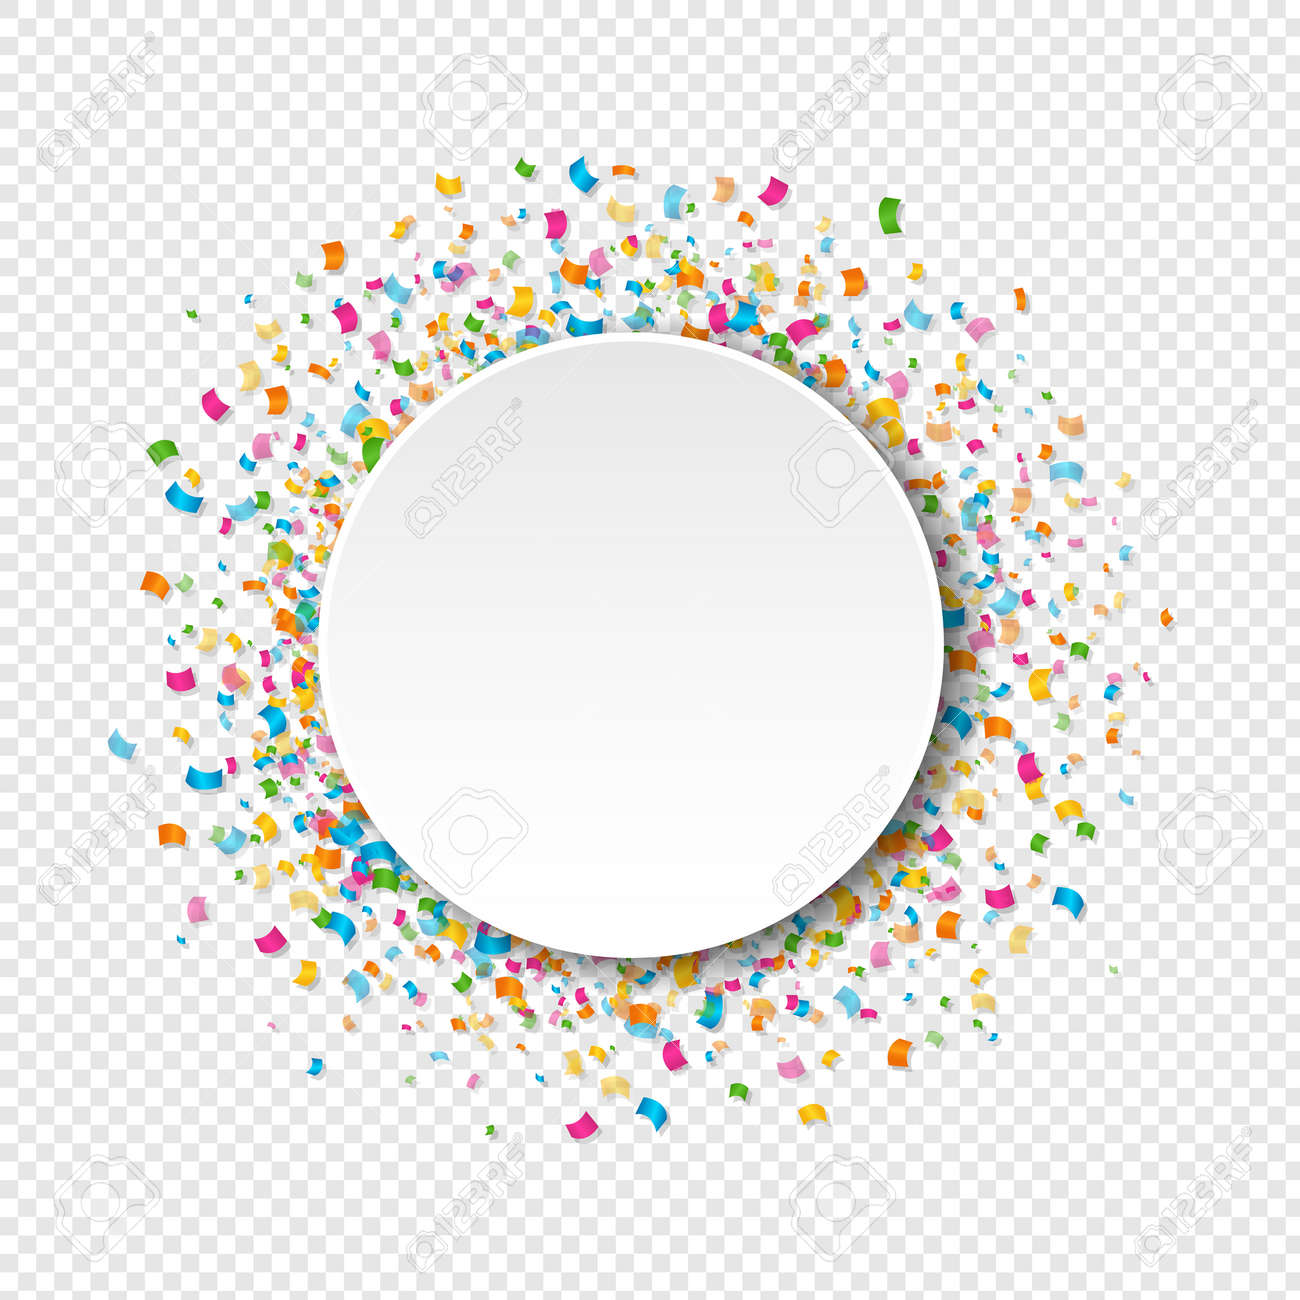 White Banner With Confetti Transparent Background With Gradient Mesh, Vector Illustration - 165097801